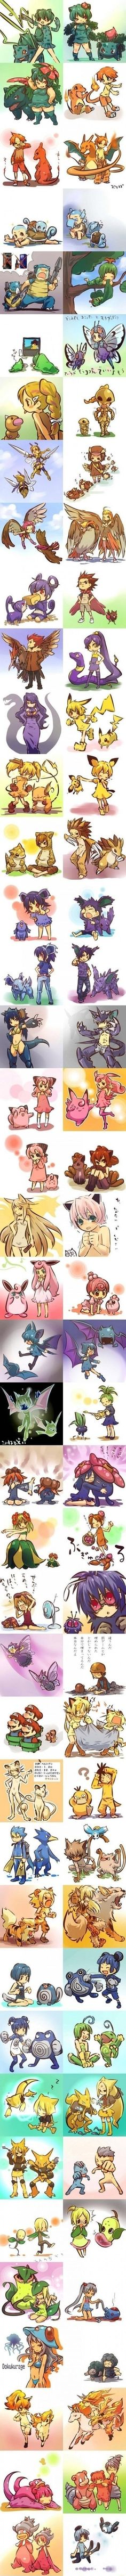 I'd be Nidoking ^..^